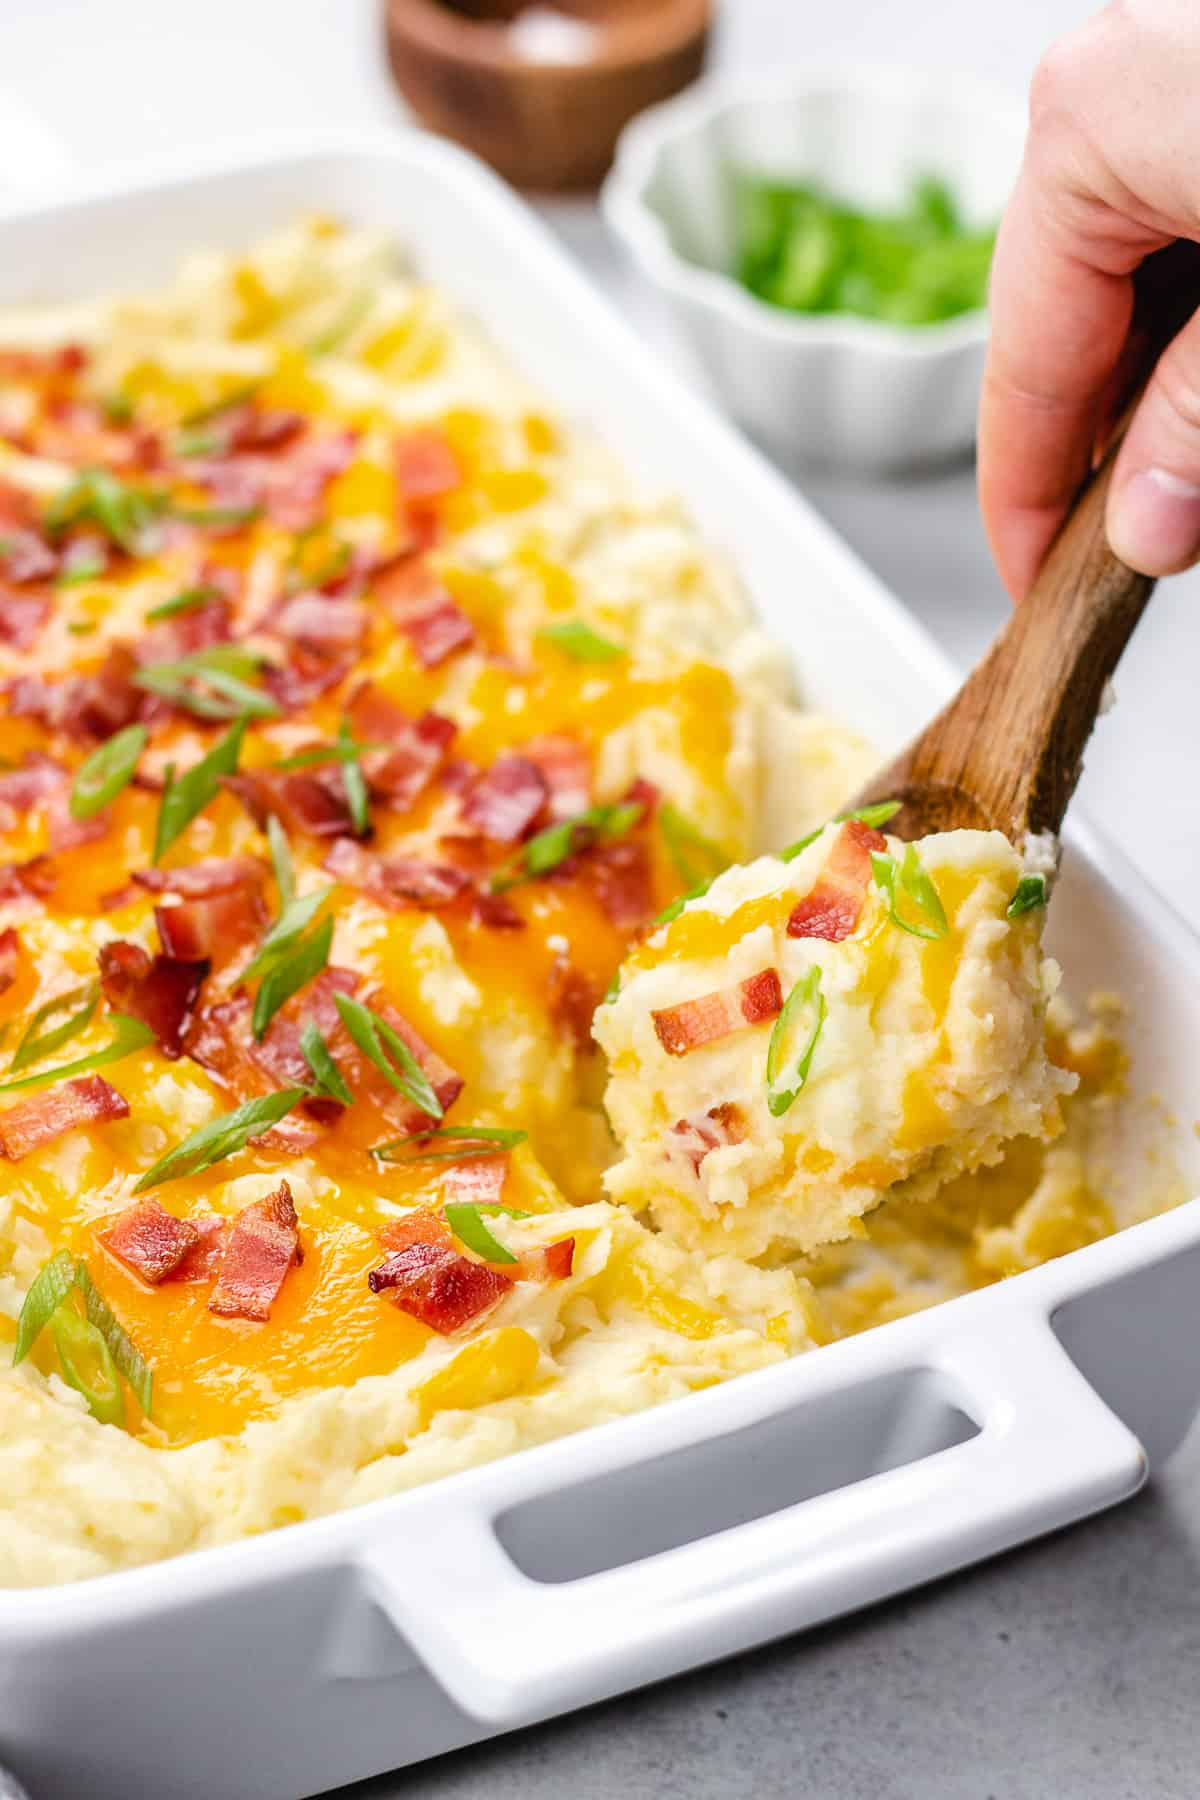 Scooping out mashed potatoes with cheese and bacon with a wooden spoon.